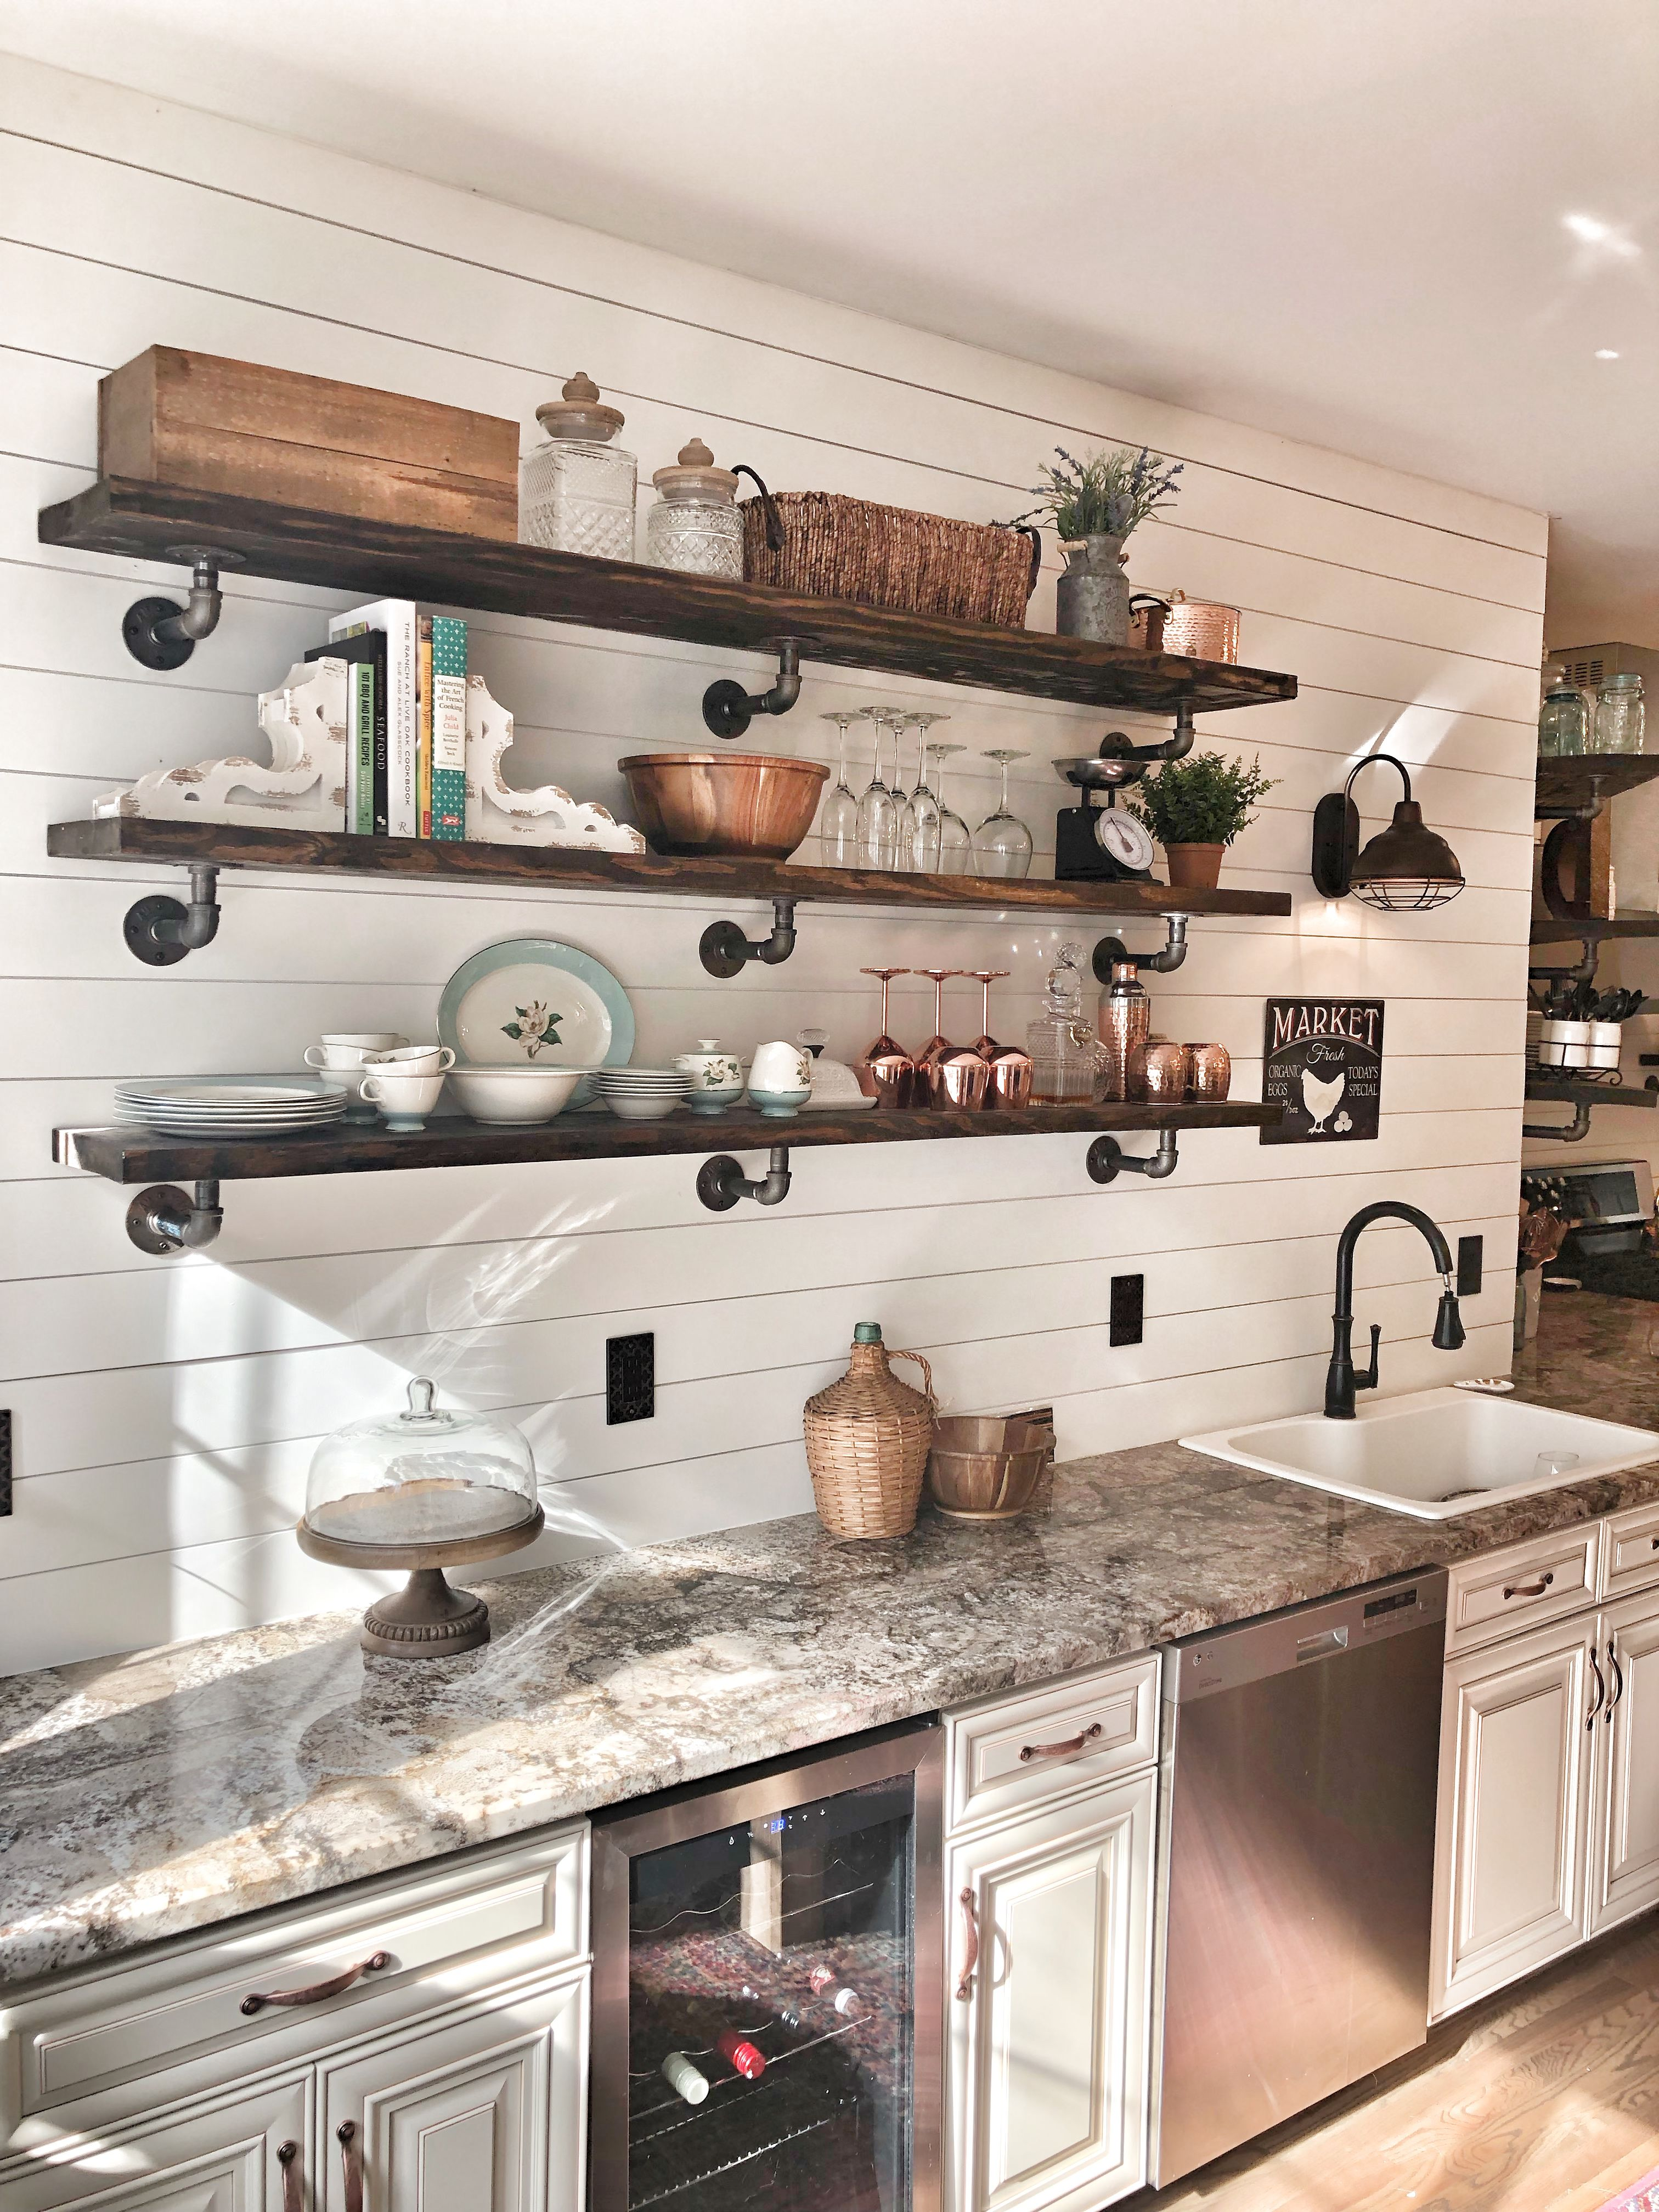 Cottage Kitchen Exposed Shelving Shabby Chic Kitchen Cabinets Farmhouse Kitchen Decor Farmhouse Kitchen